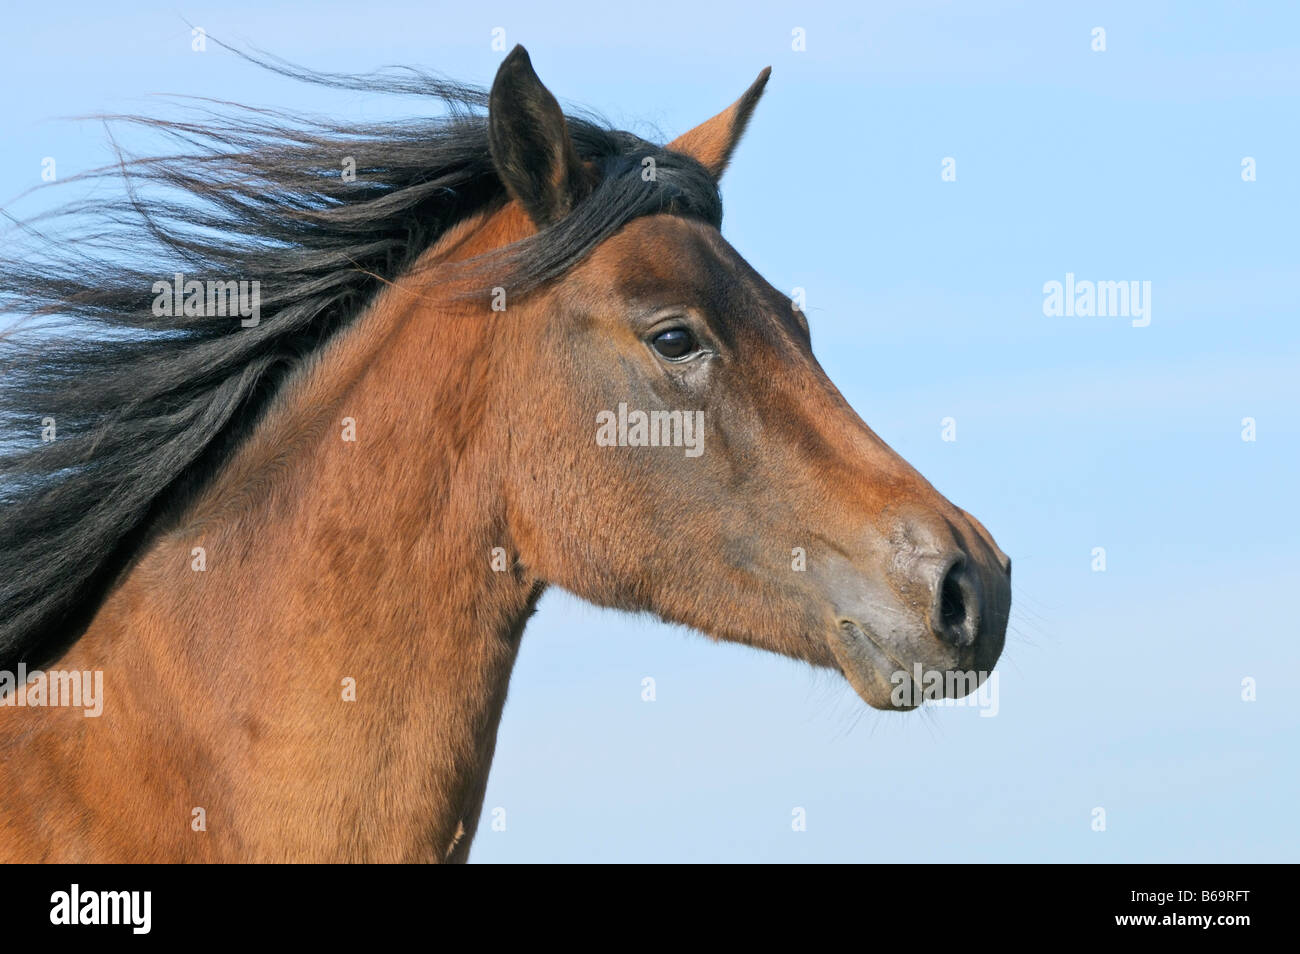 Horses Head Side View High Resolution Stock Photography And Images Alamy